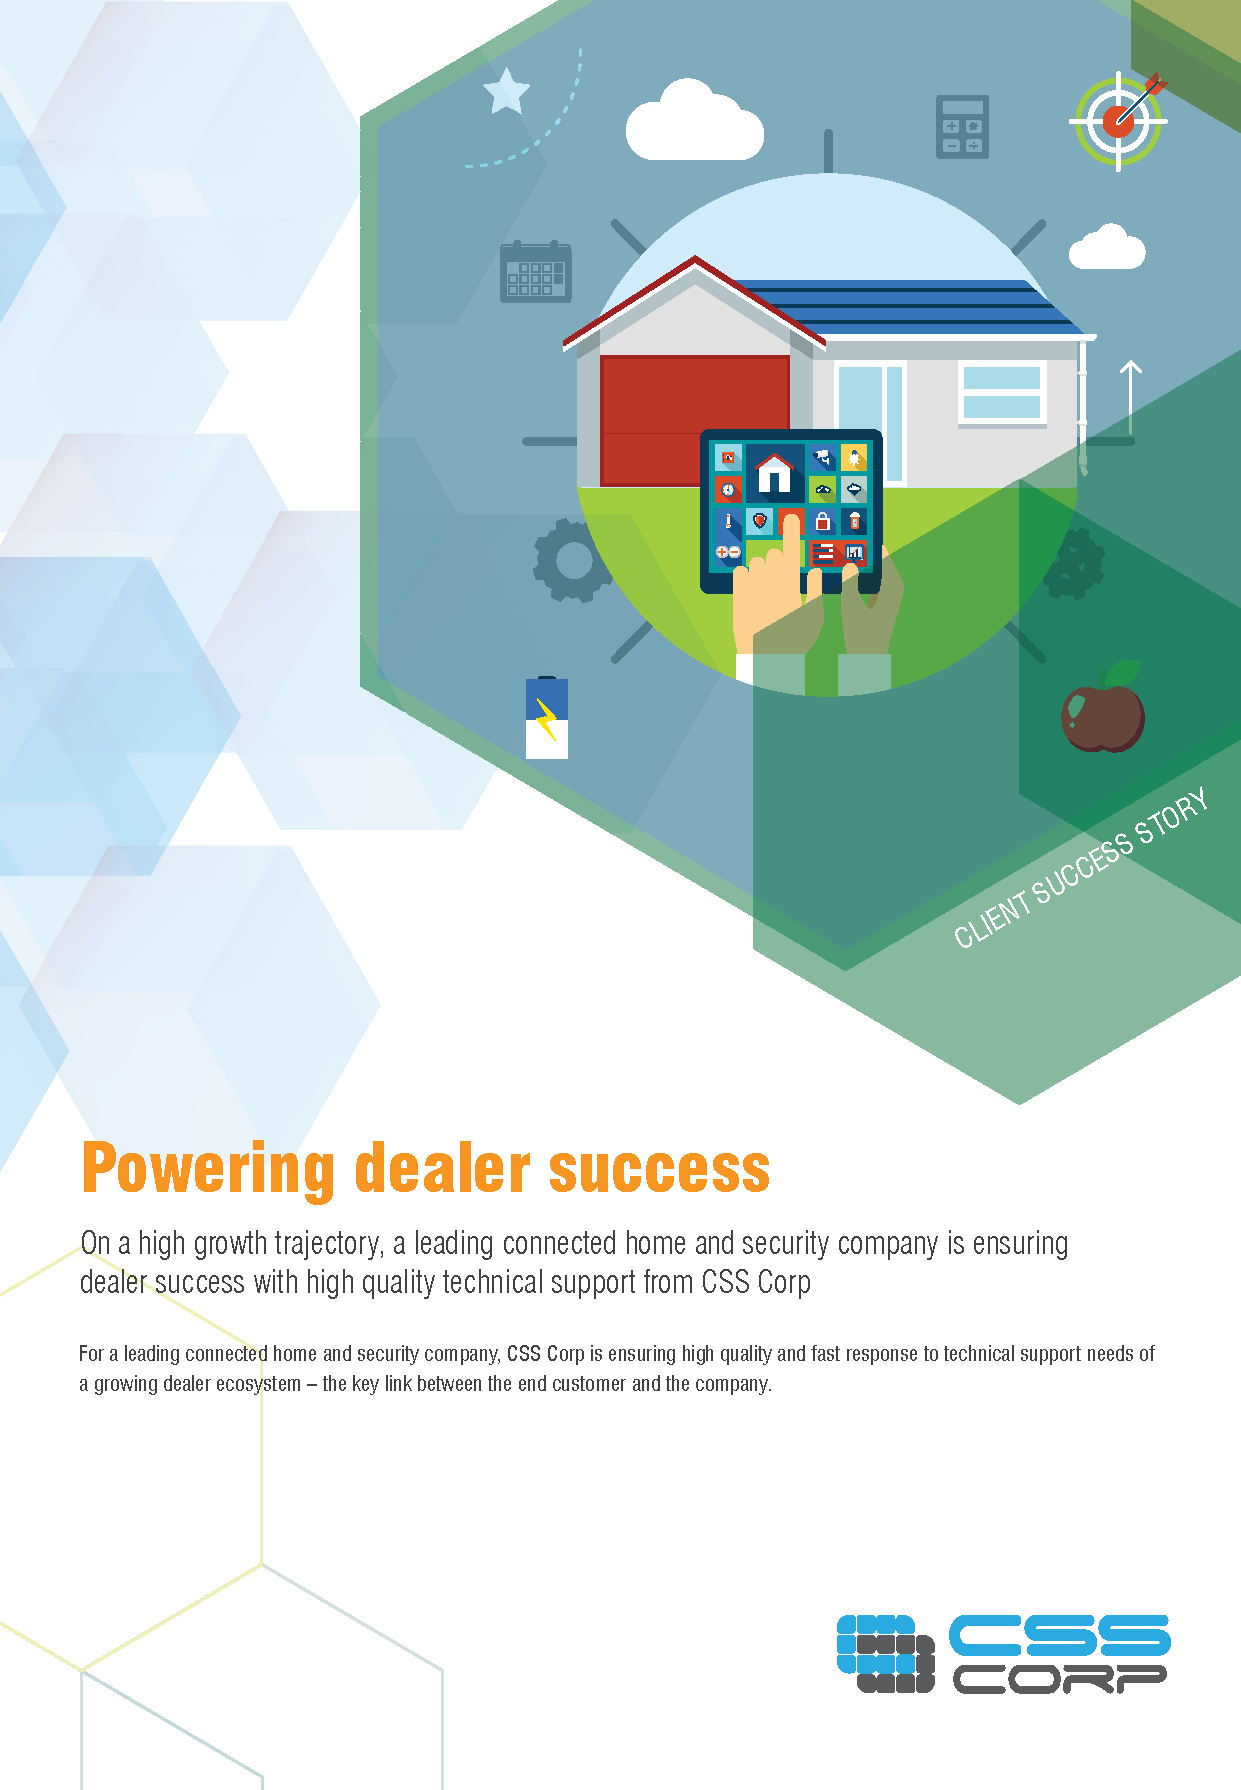 Powering dealer success